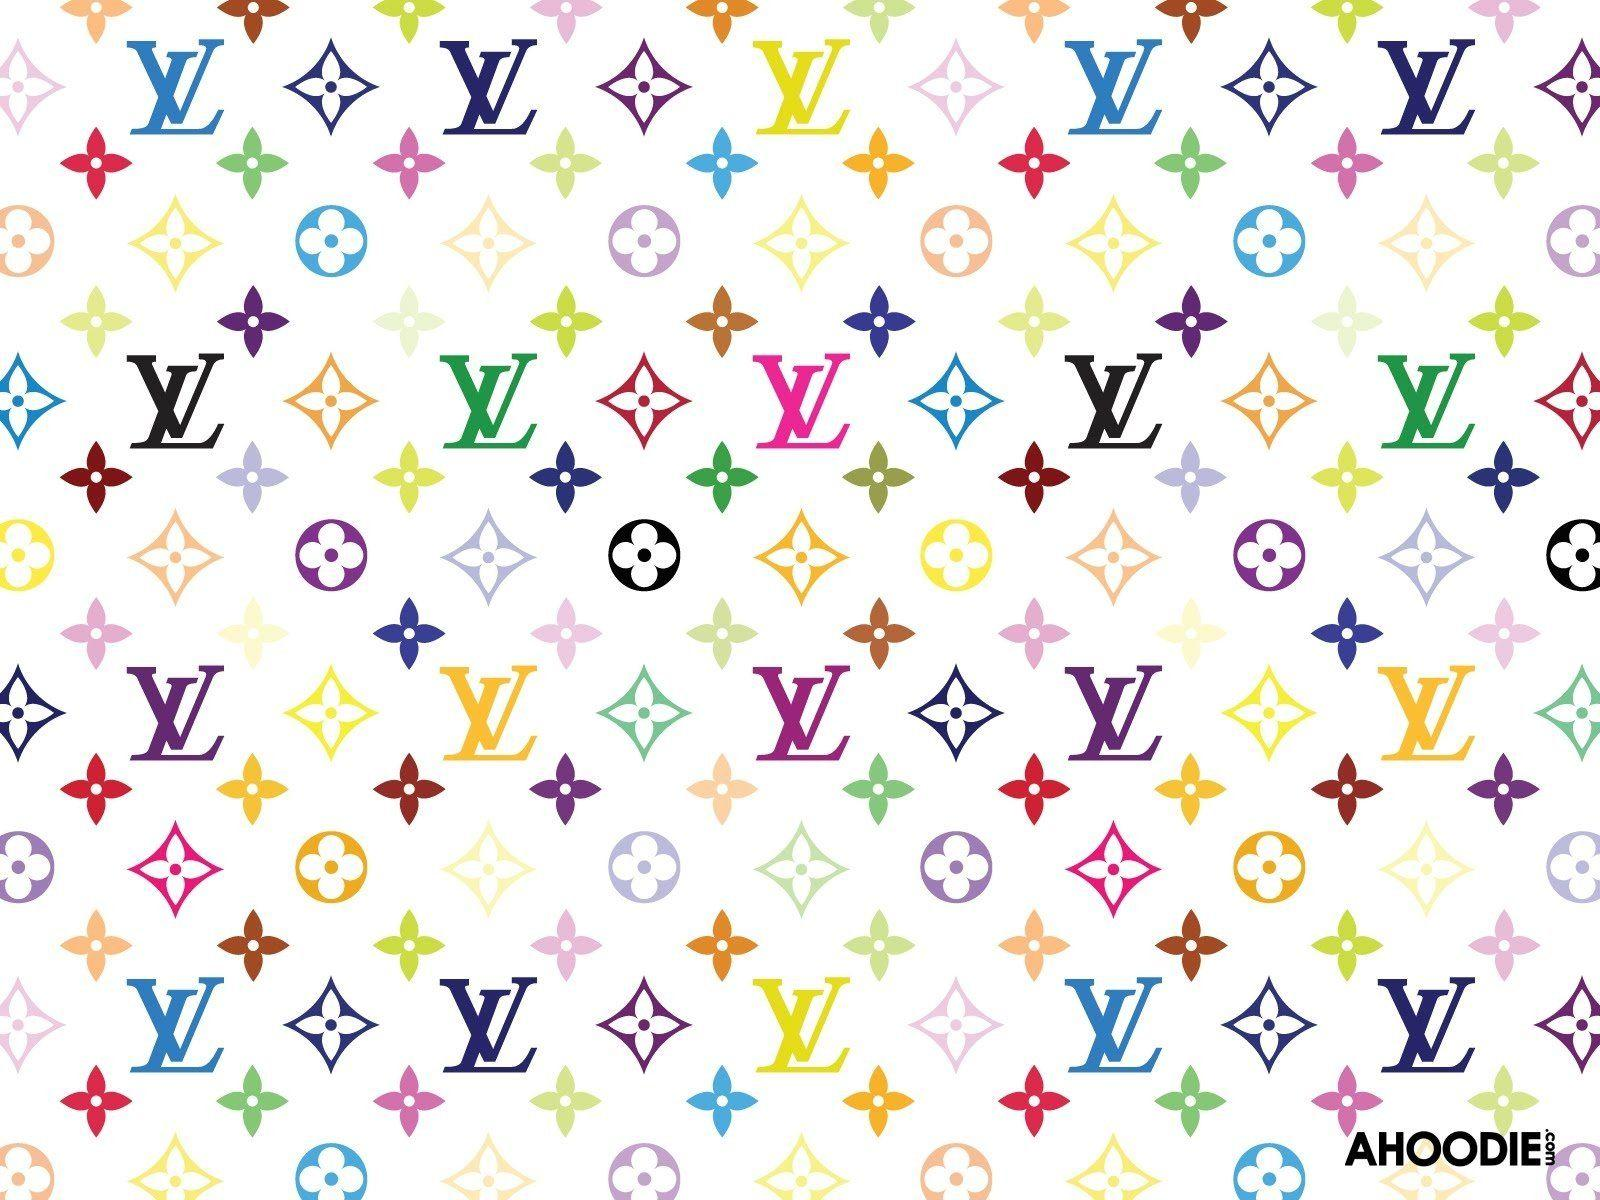 10 Louis Vuitton HD Wallpapers